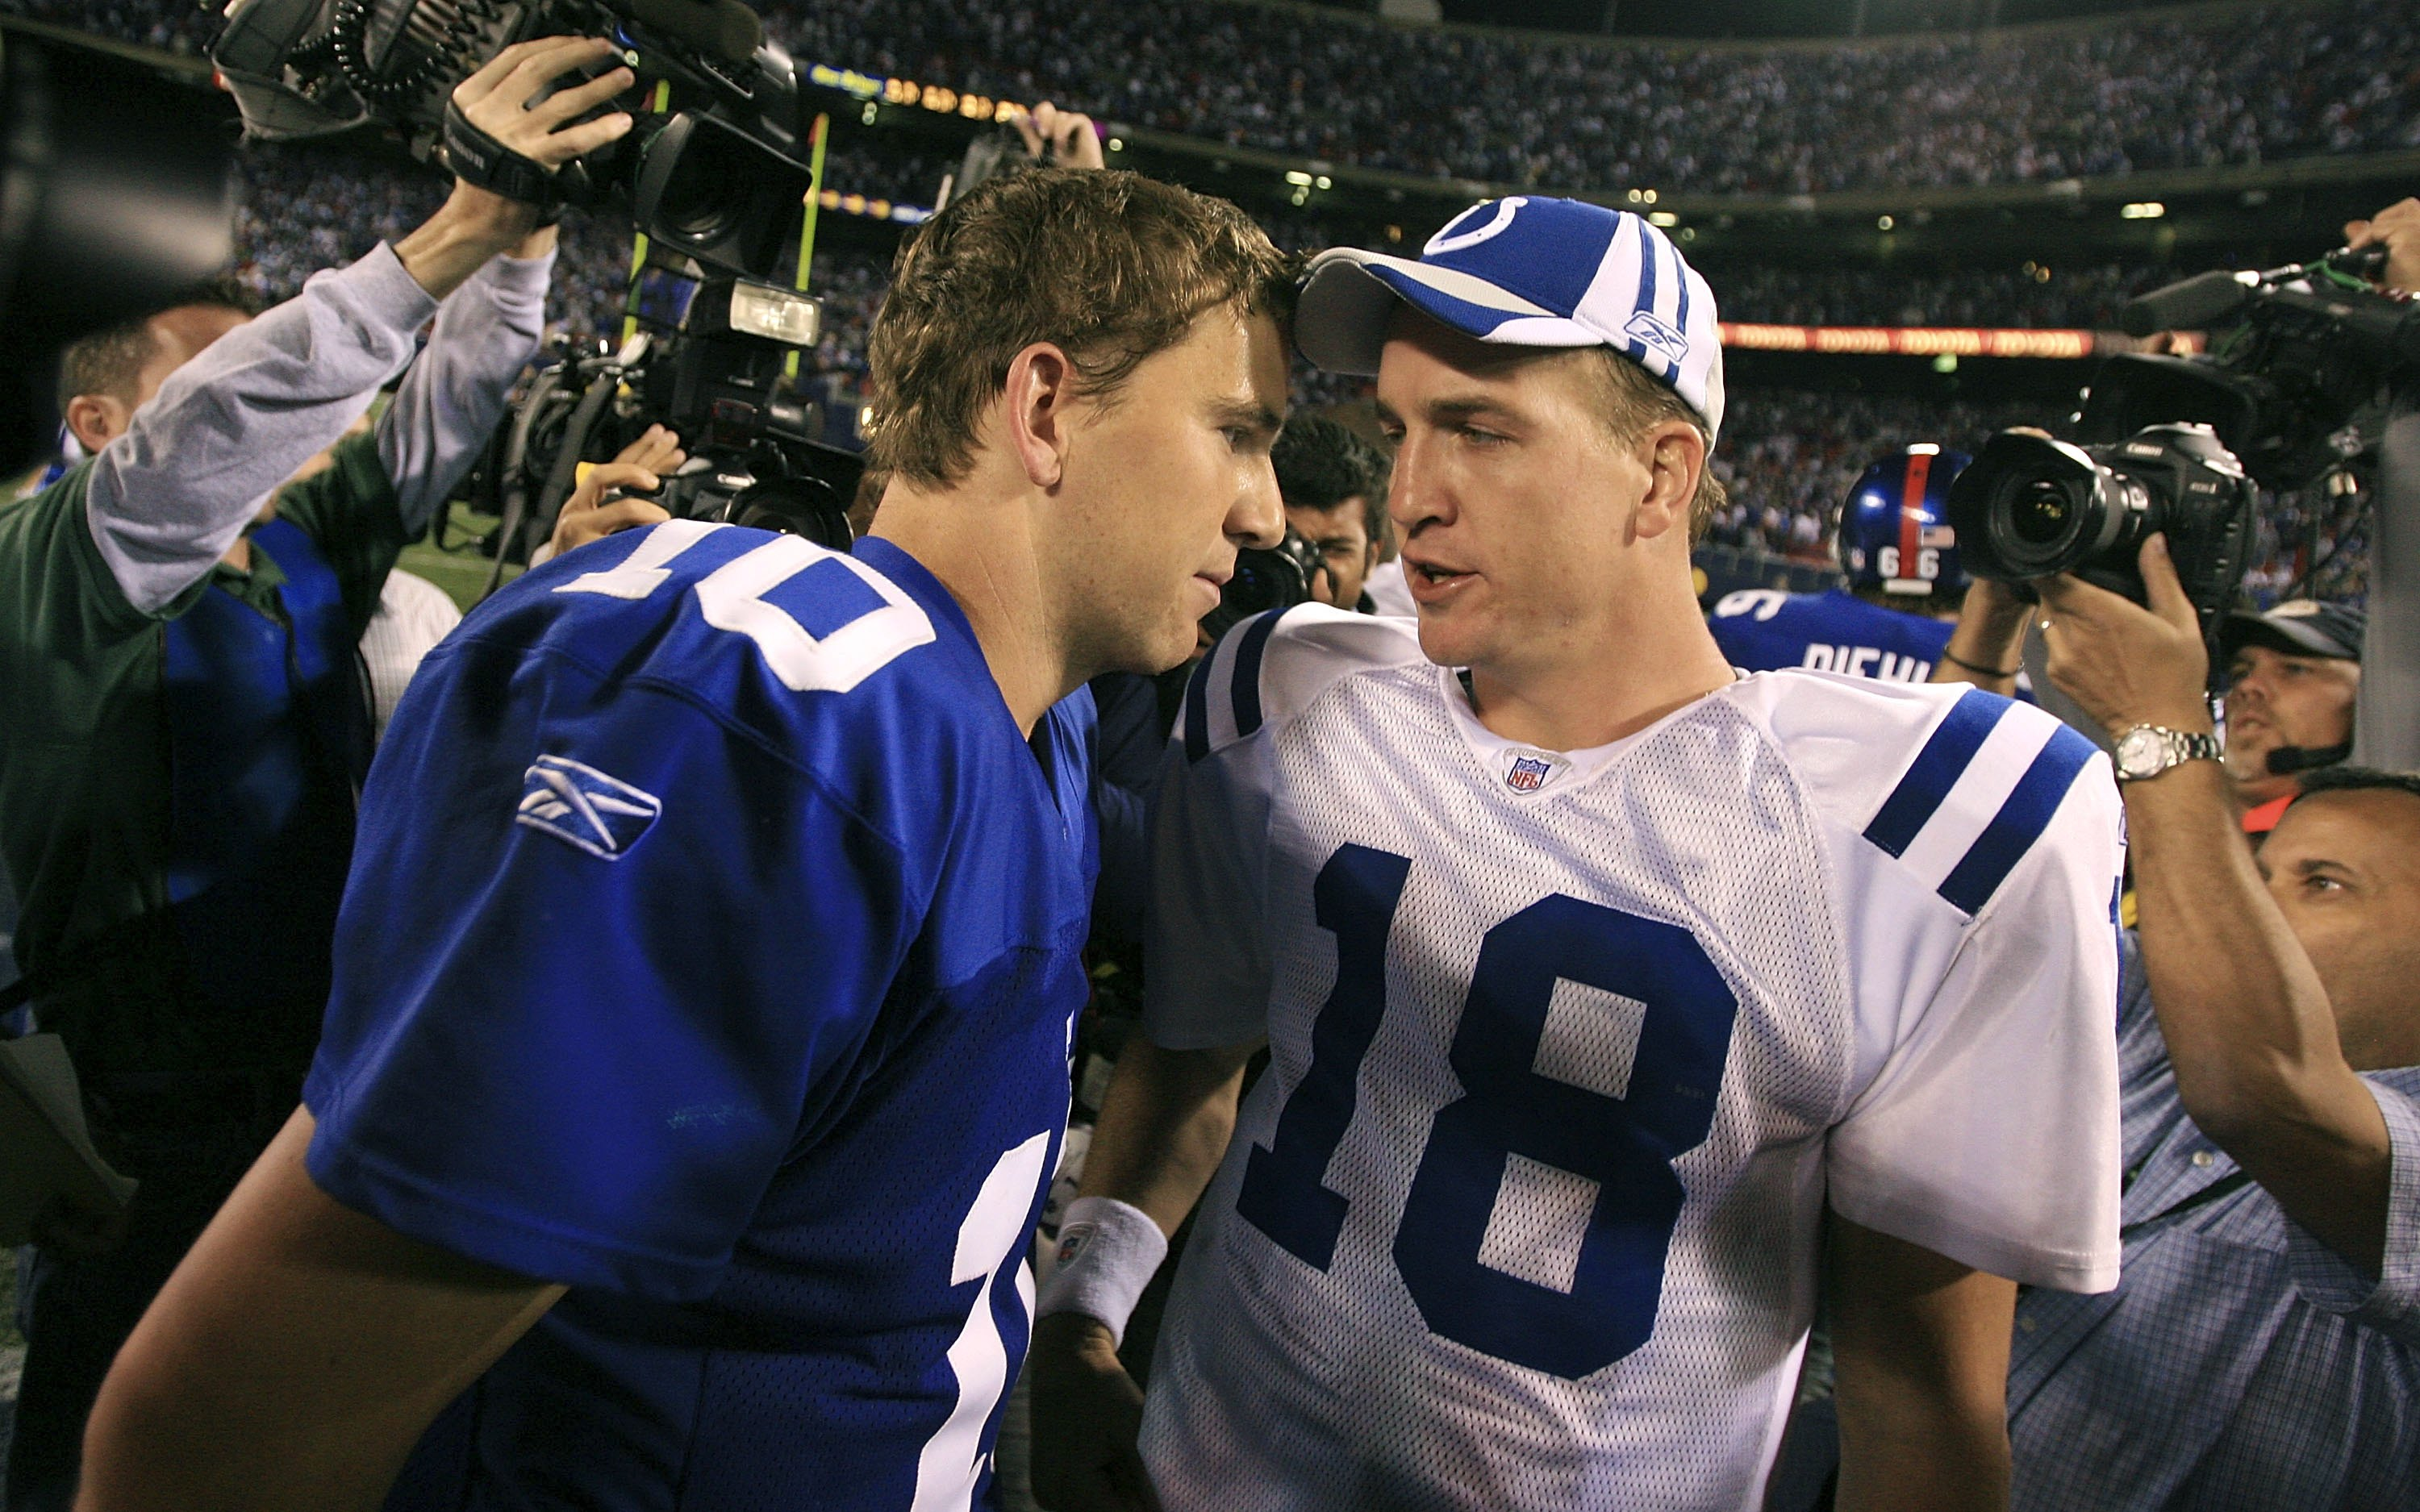 Eli and Peyton Manning talking after playing each other in an NFL game